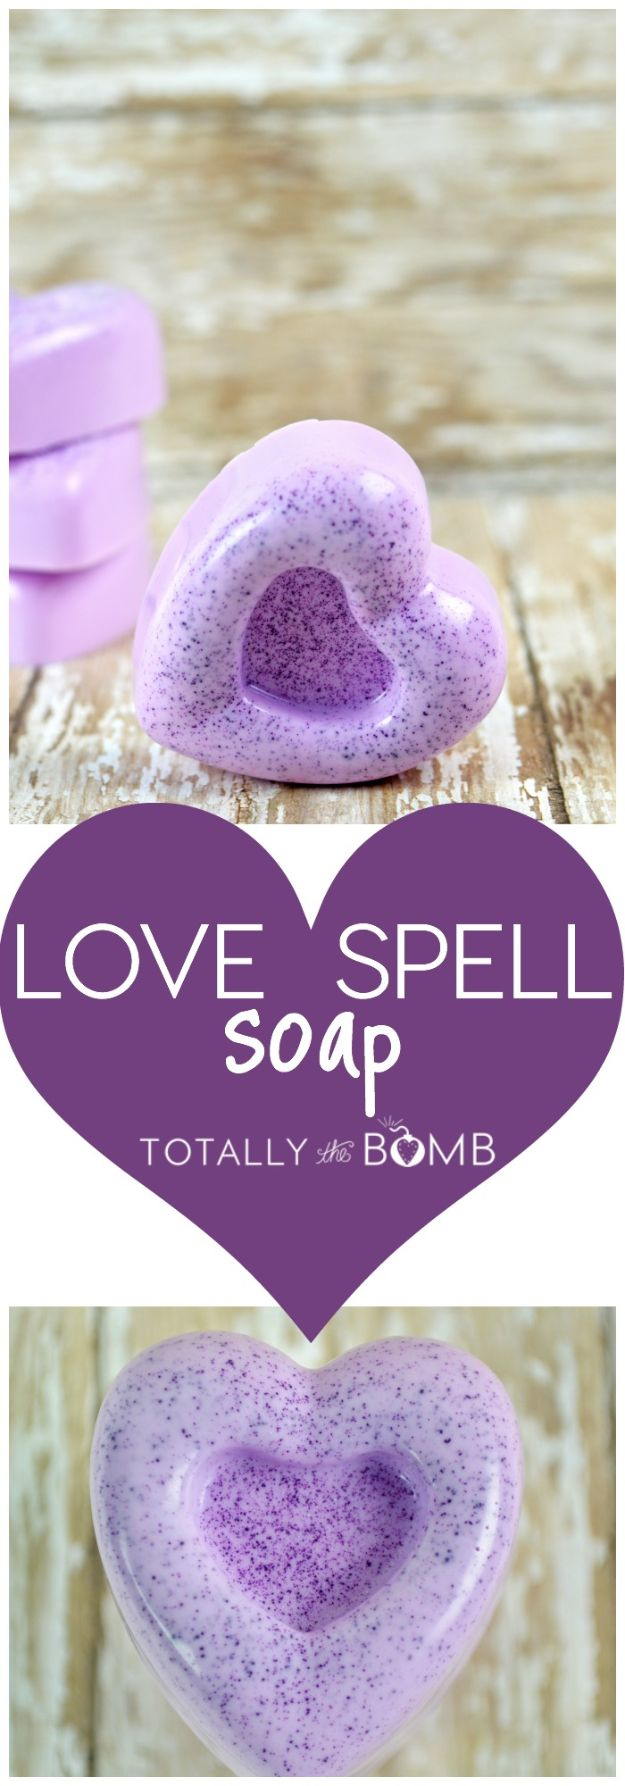 Soap Recipes DIY - Love Spell Soap - DIY Soap Recipe Ideas - Best Soap Tutorials for Soap Making Without Lye - Easy Cold Process Melt and Pour Tips for Beginners - Crockpot, Essential Oils, Homemade Natural Soaps and Products - Creative Crafts and DIY for Teens, Kids and Adults #soaprecipes #diygifts #soapmaking